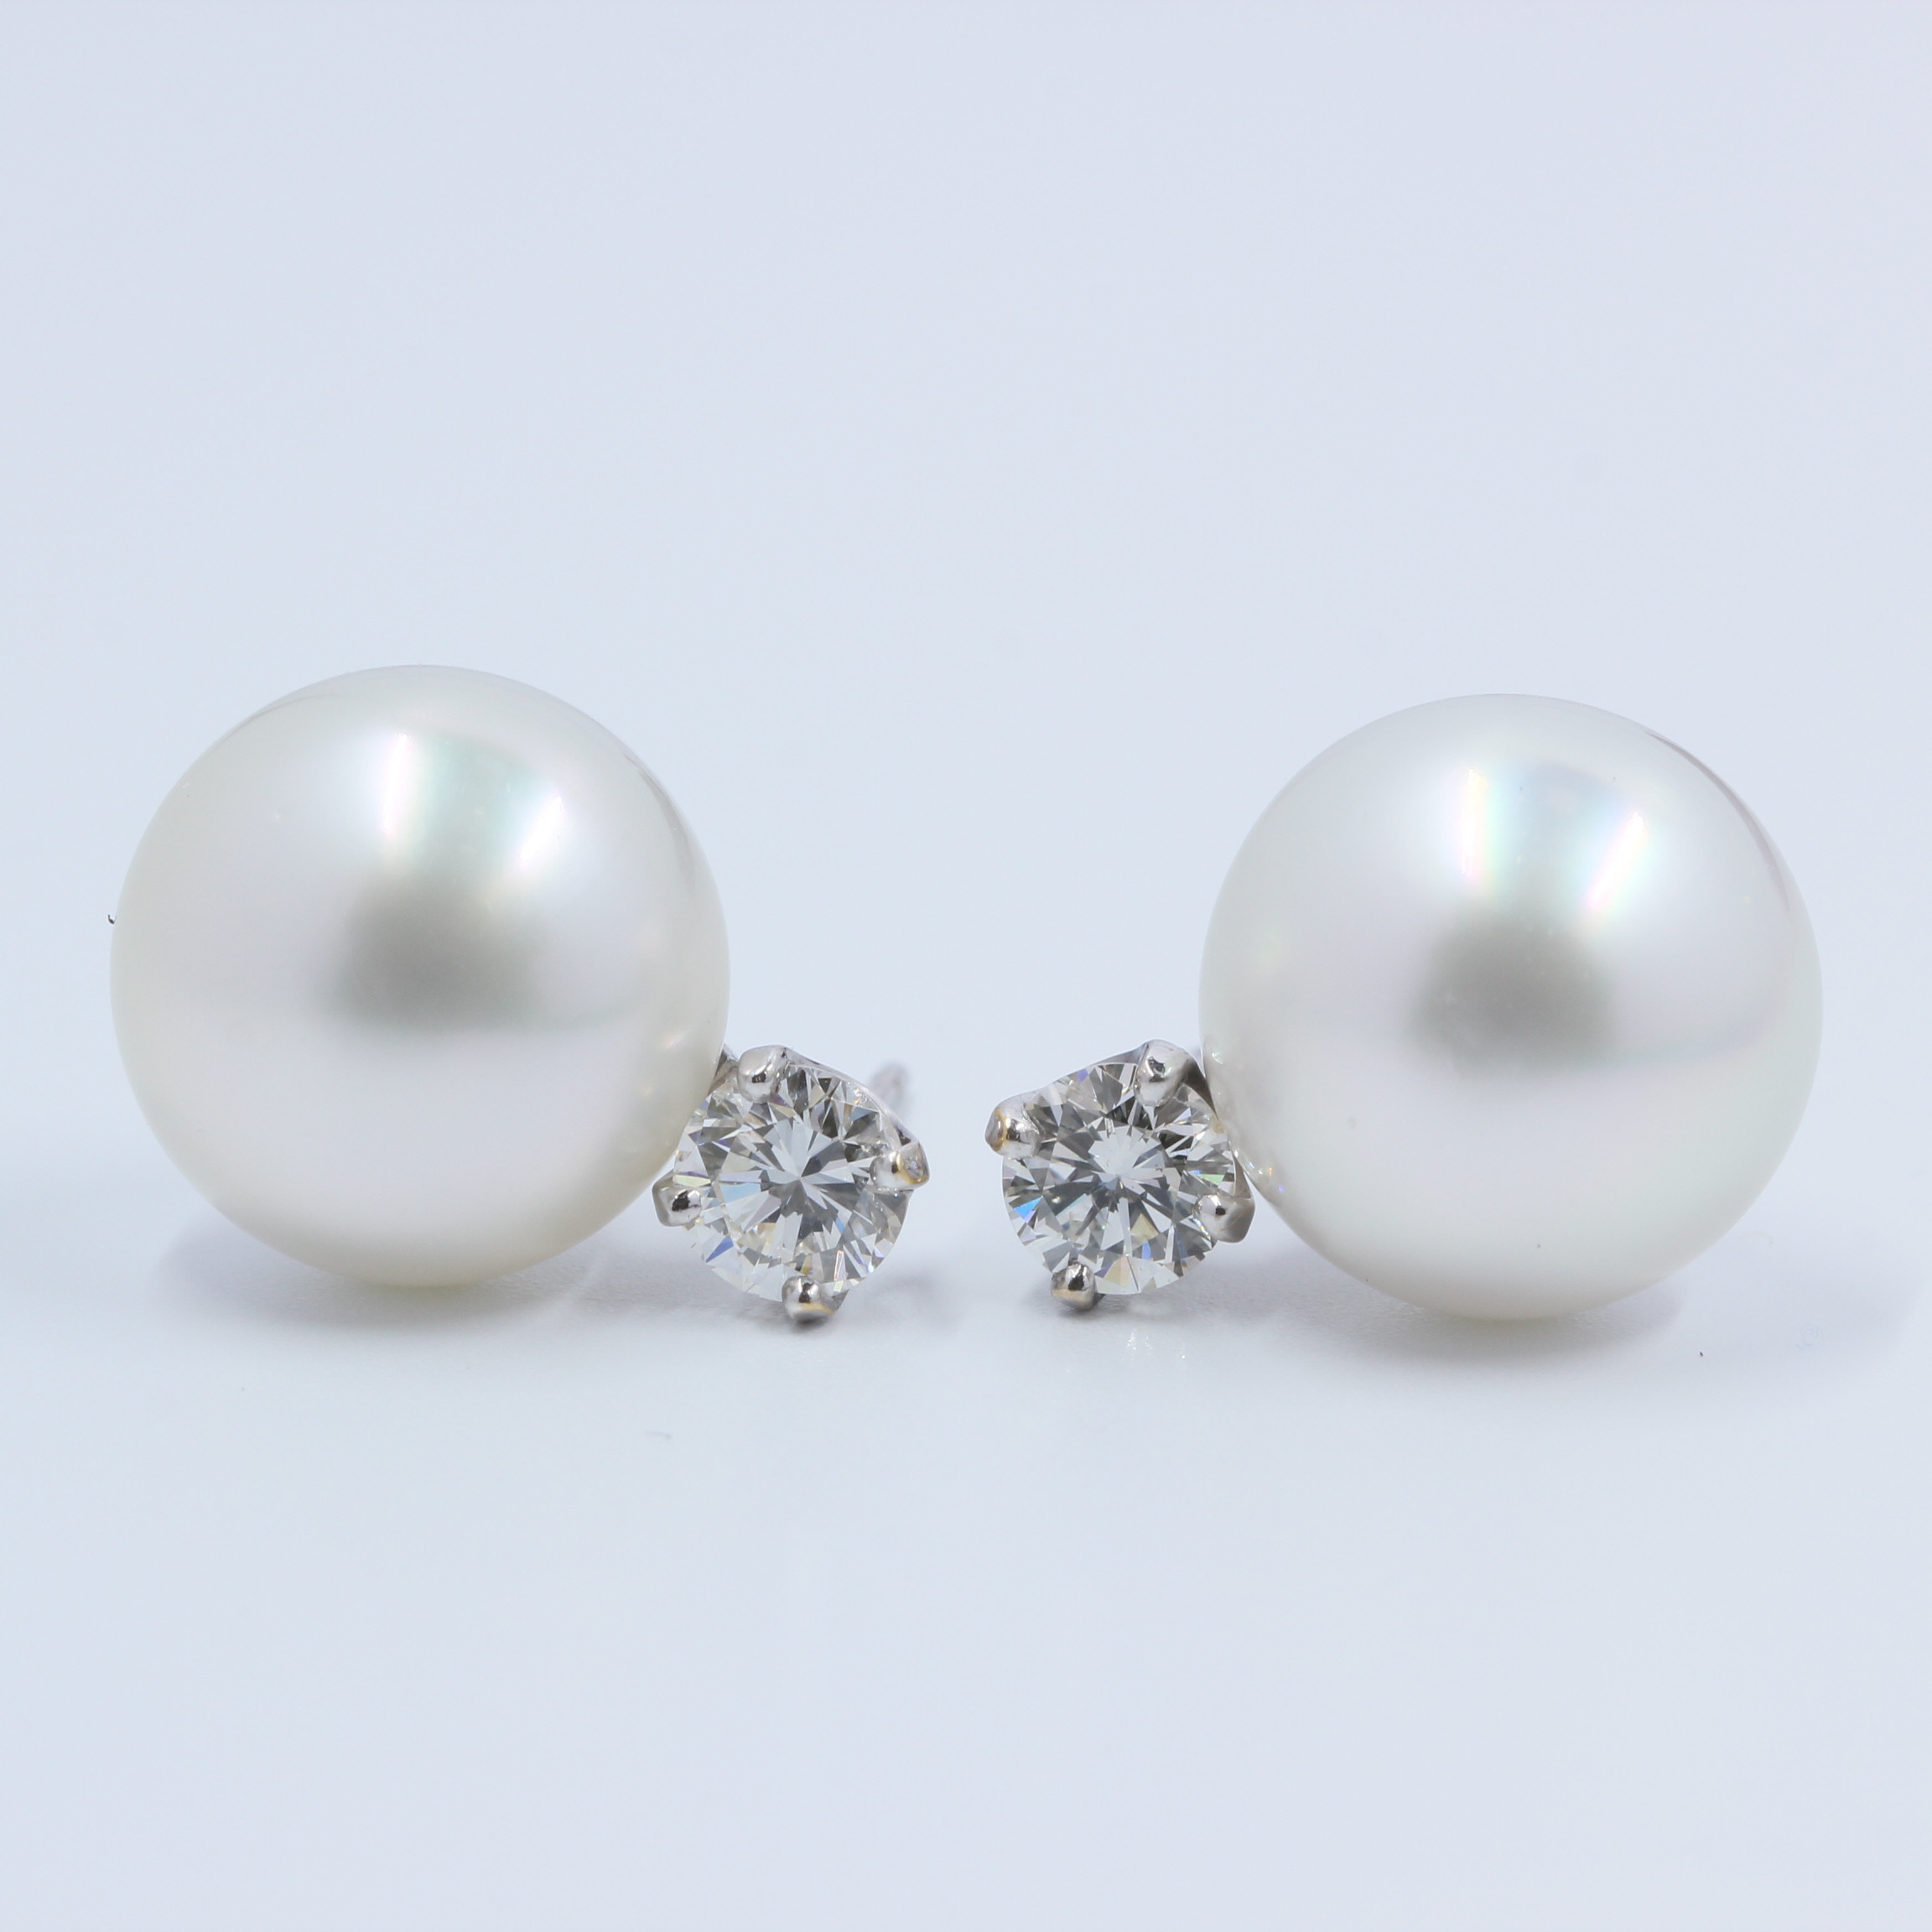 53b5949fc Details about 1 Carat in Beautiful Diamonds & Cultured Pearls Stud Earrings  in 14K White Gold